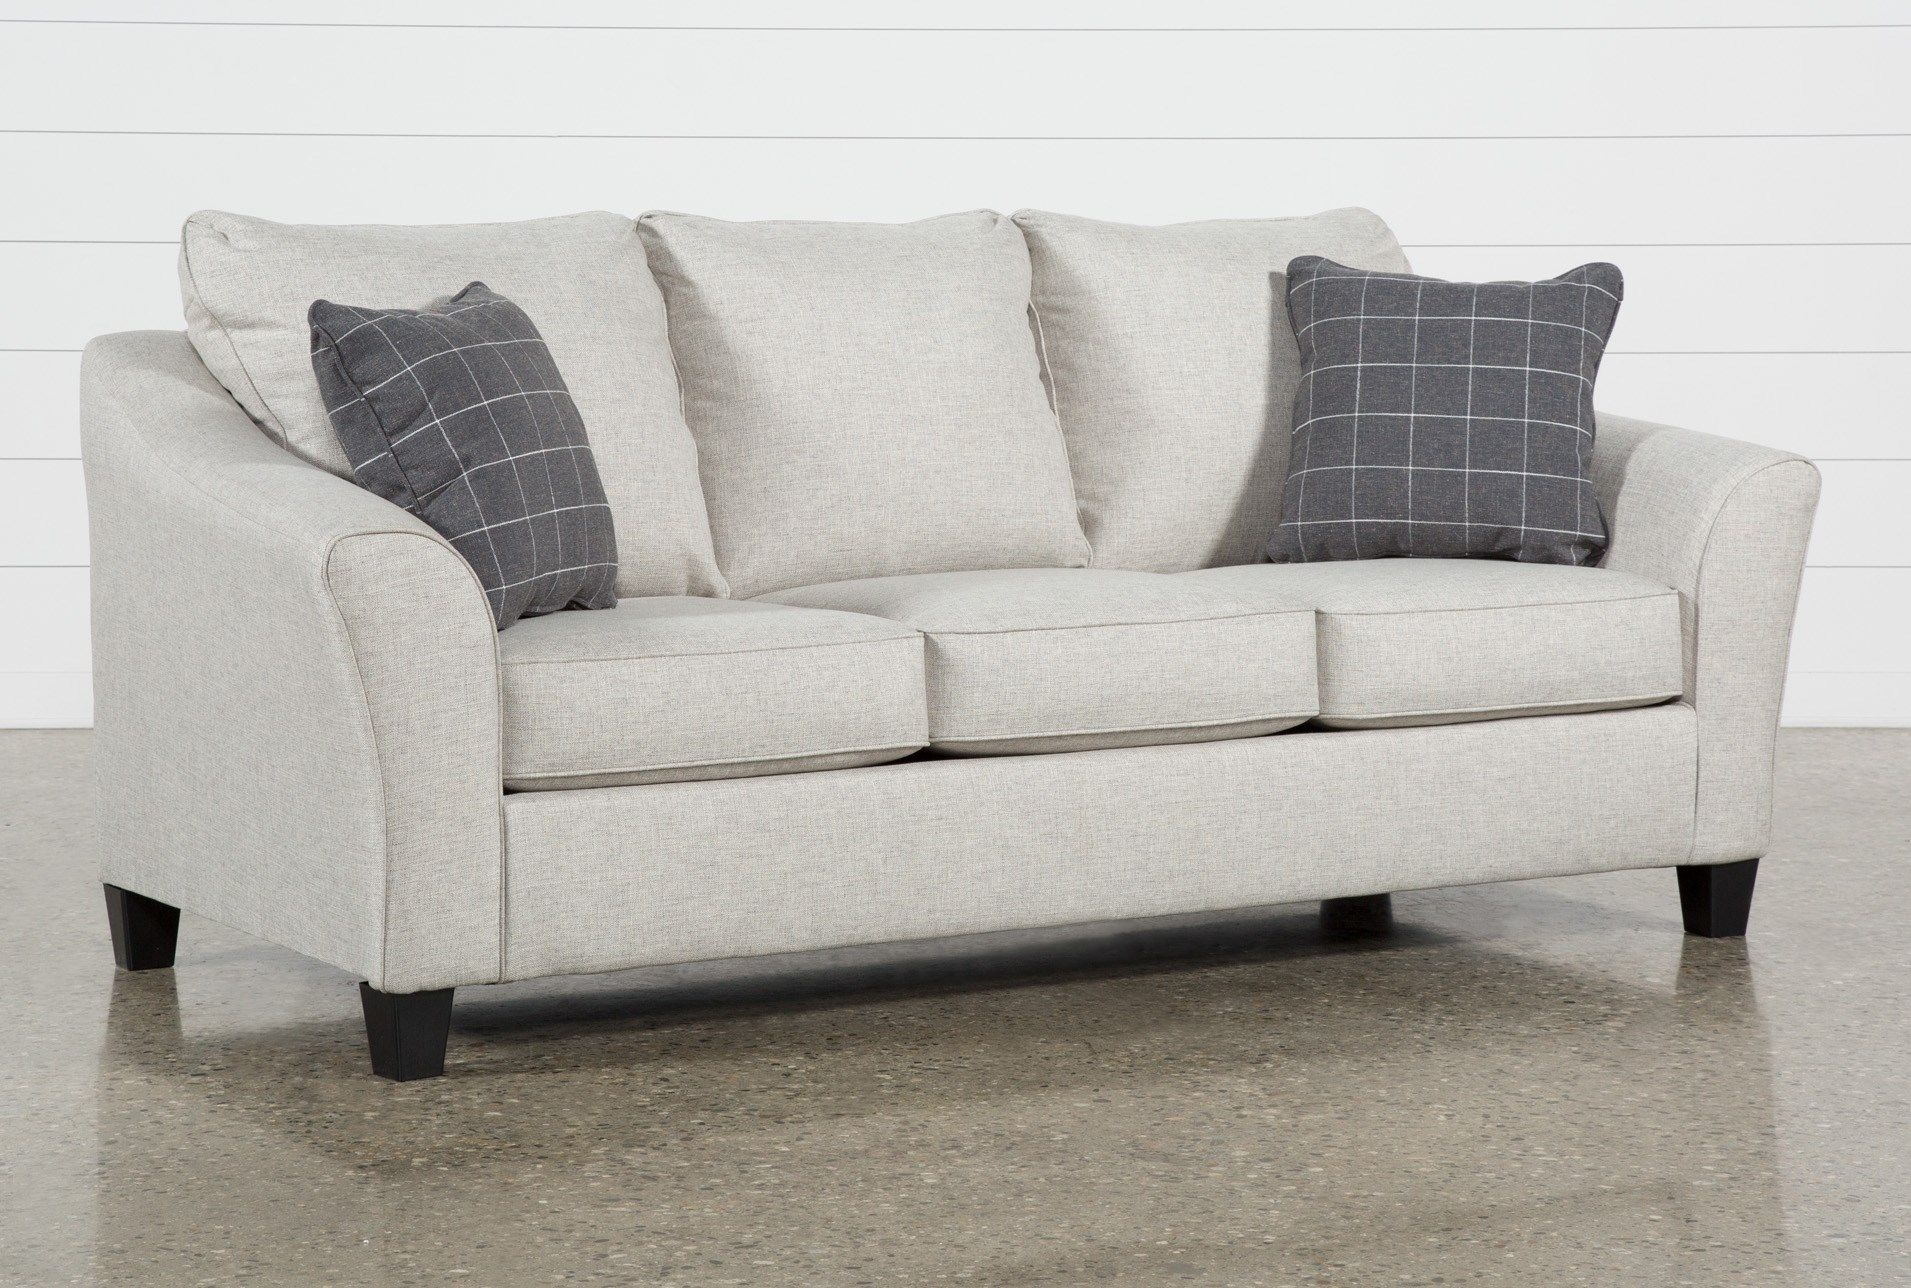 Kinsley Queen Sofa Sleeper Queen Sofa Sleeper Sleeper Sofa